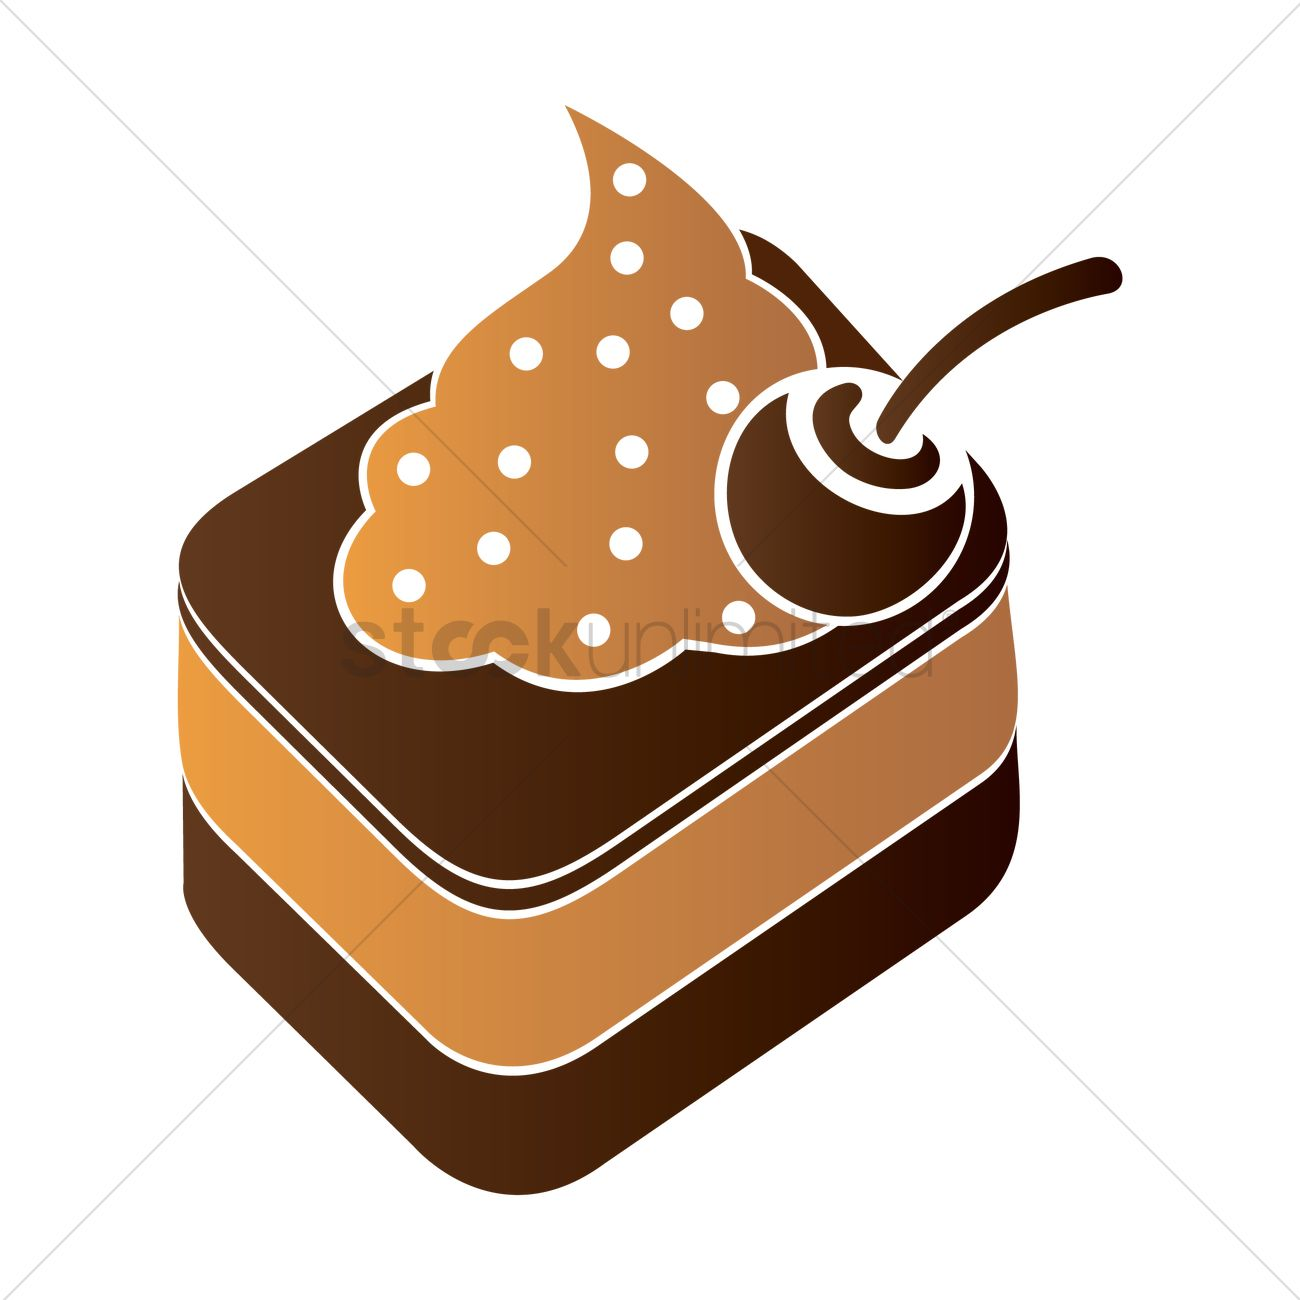 Fhem Icon Küche Cake Icon Vector Image 1953482 Stockunlimited